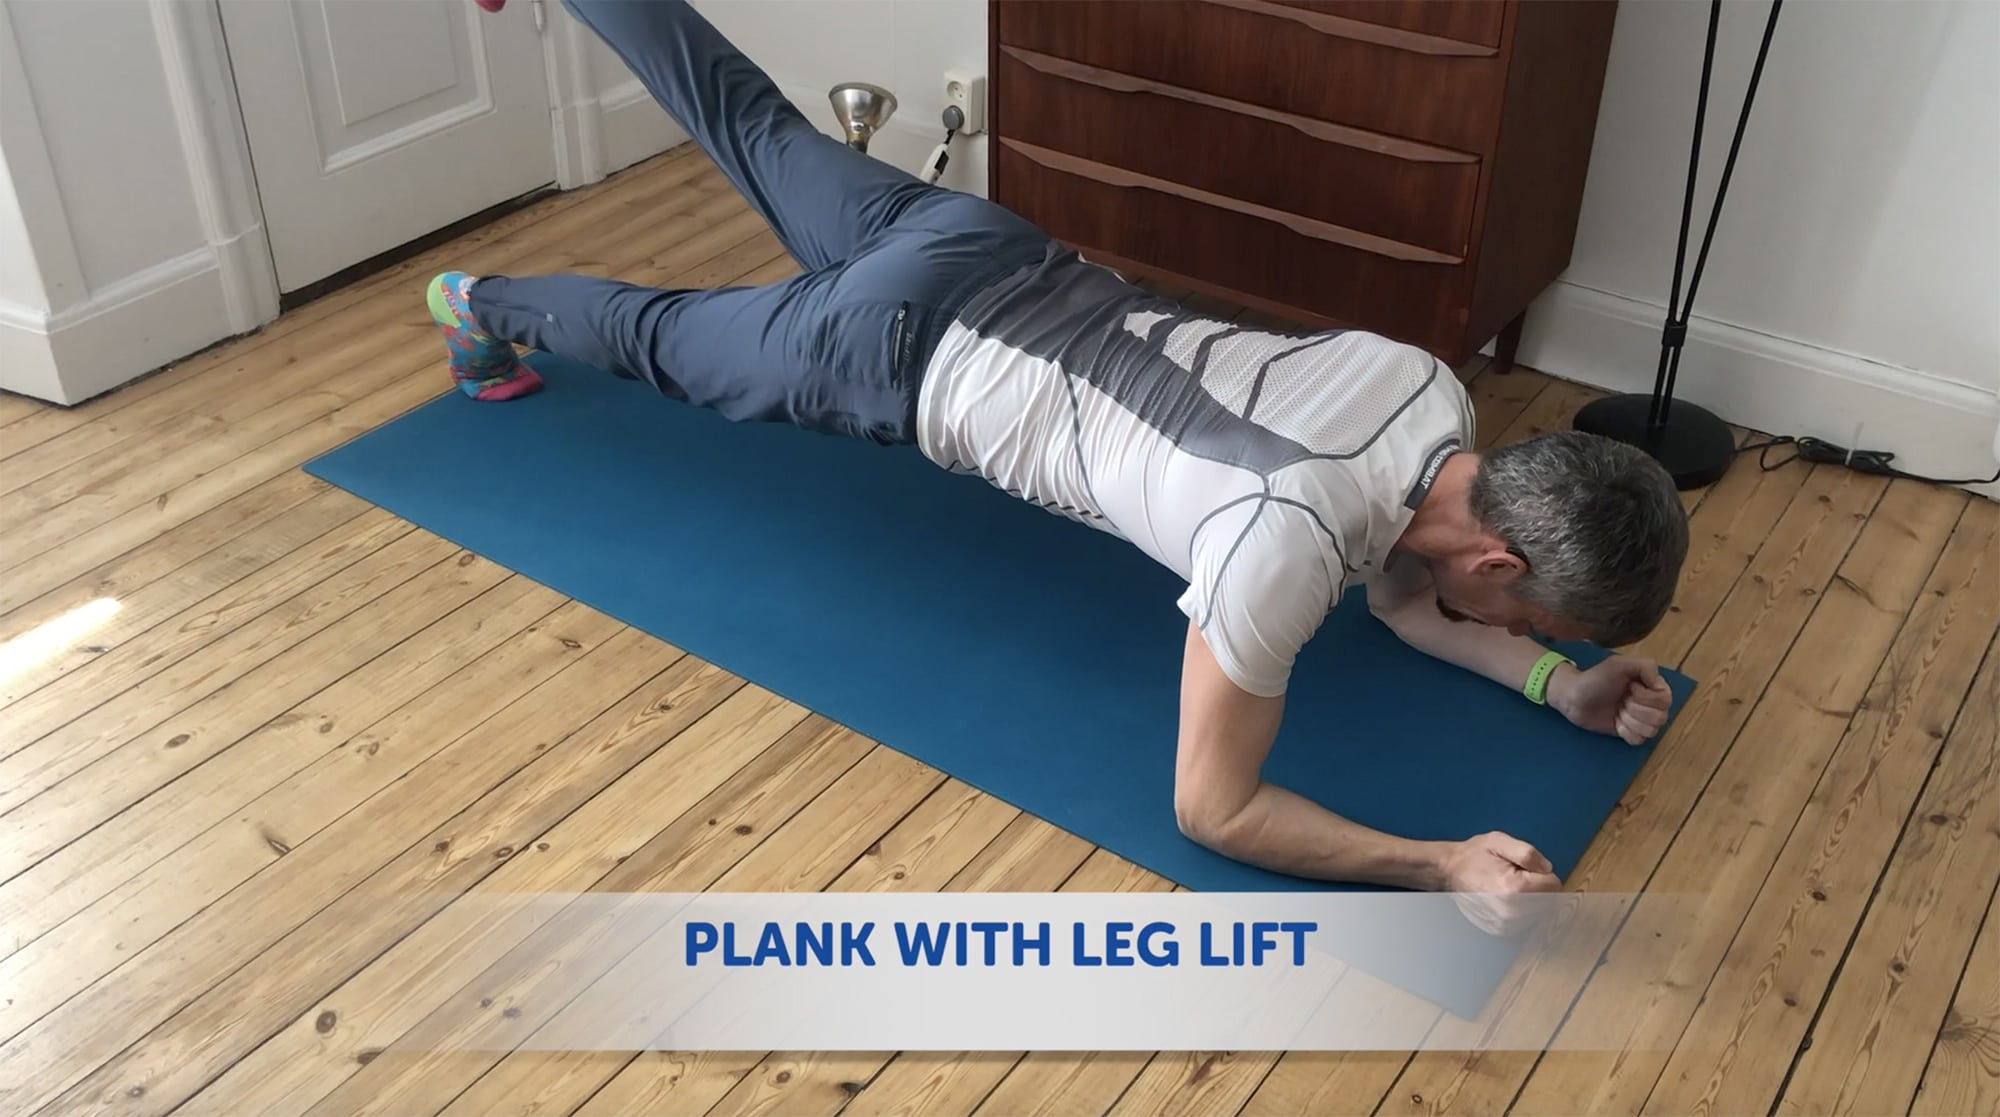 Add a leg lift to make your plank more challenging